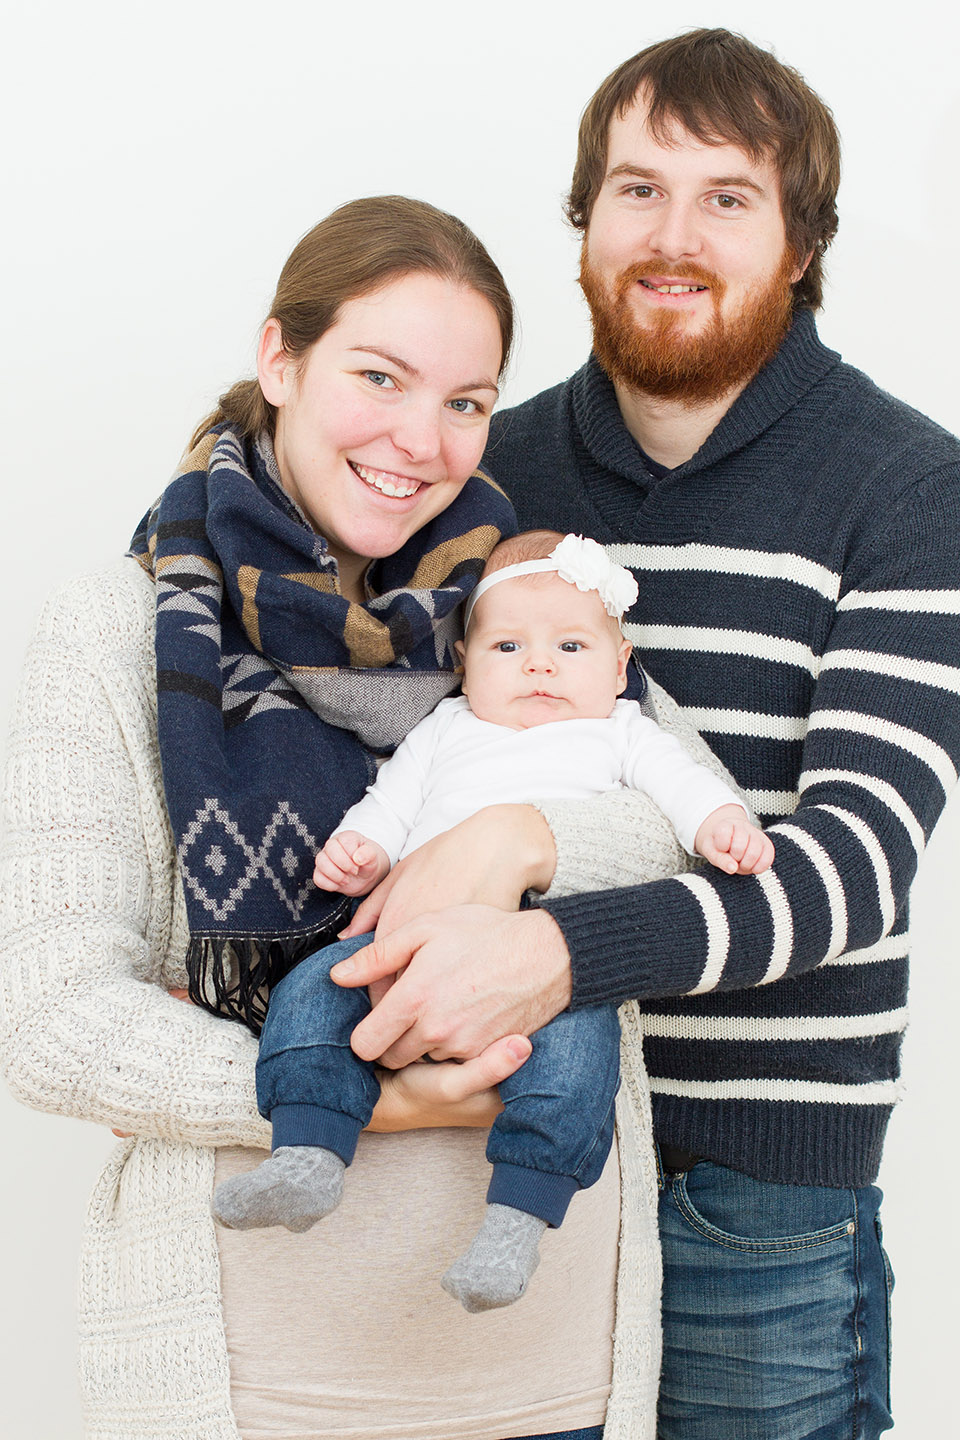 Studio style family portraits taken in Orangeville by Frank Myrland Photography